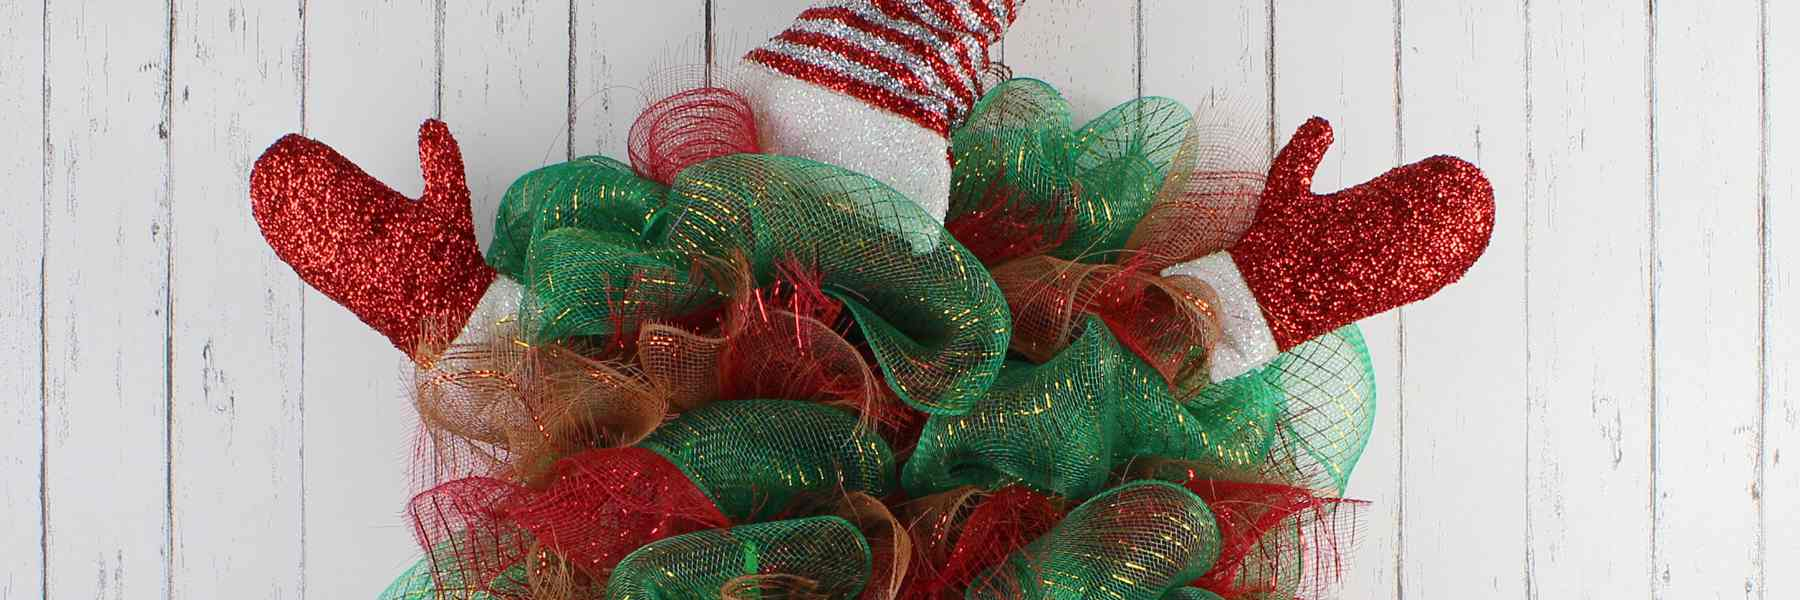 100 Christmas Decorations Wholesale Suppliers